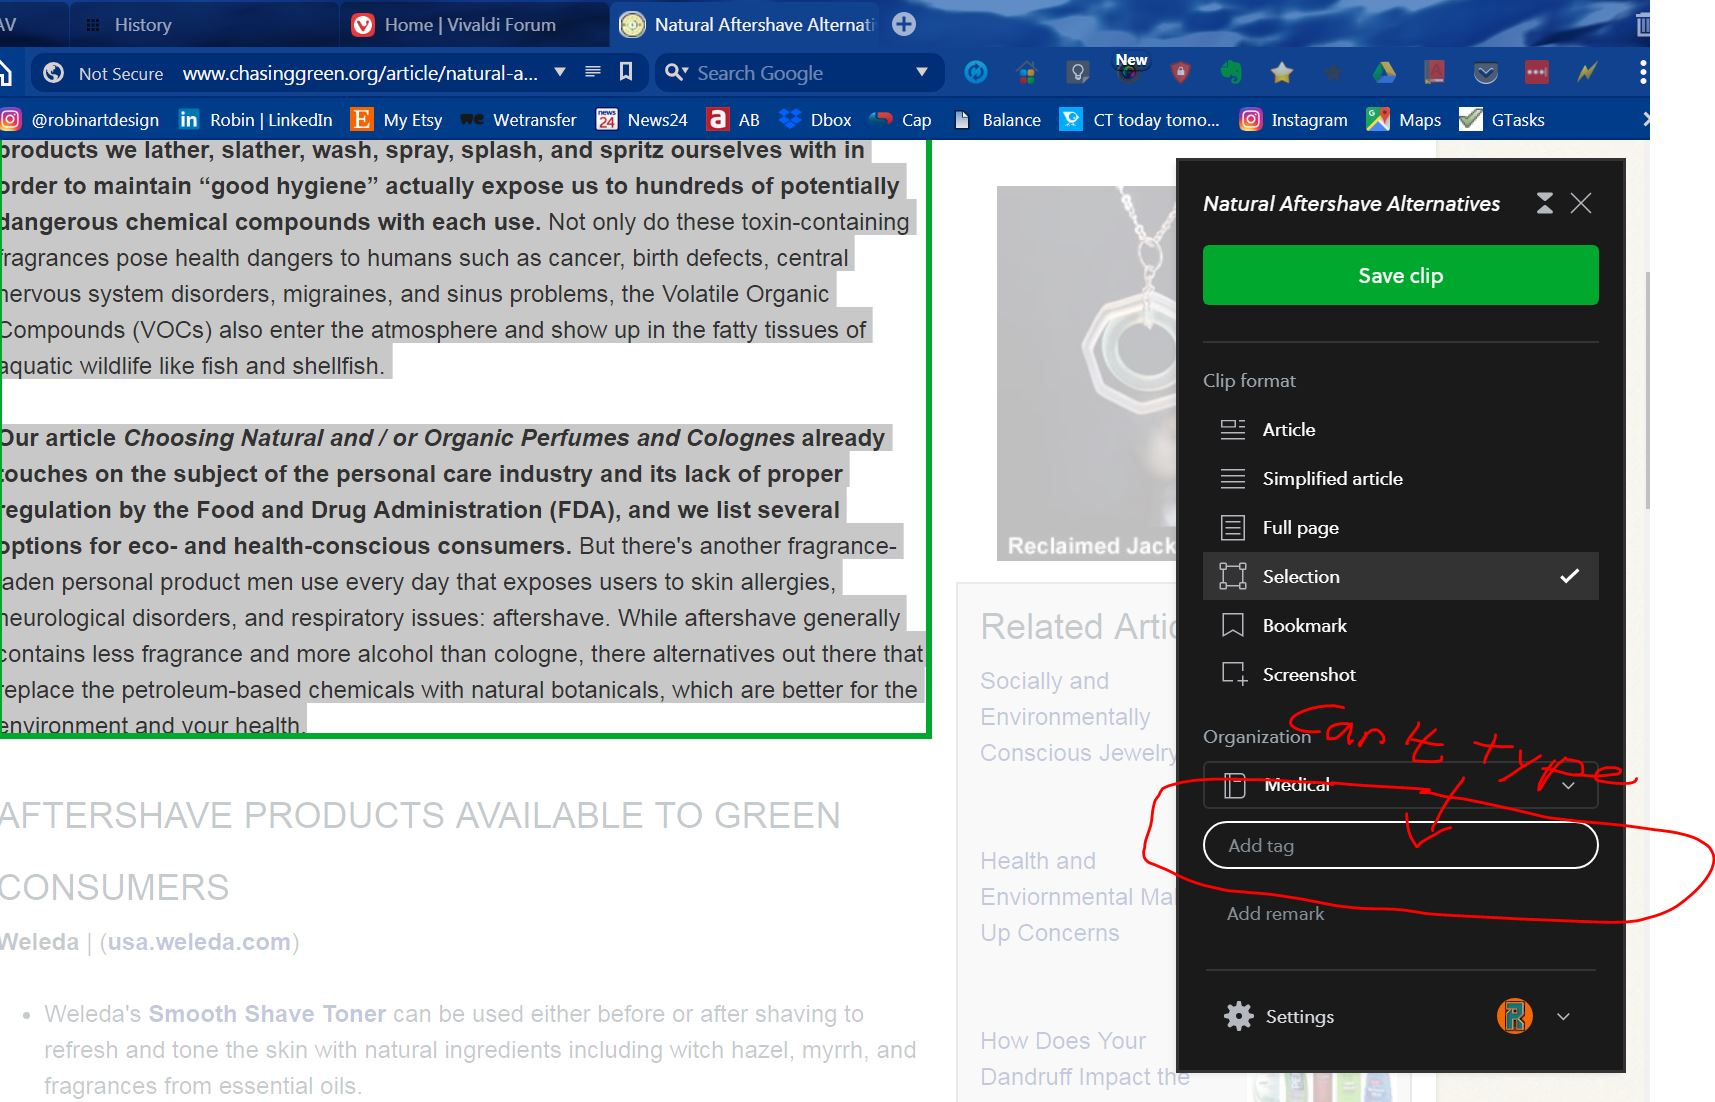 Extensions issues     Now Evernote Web Clipper | Vivaldi Forum